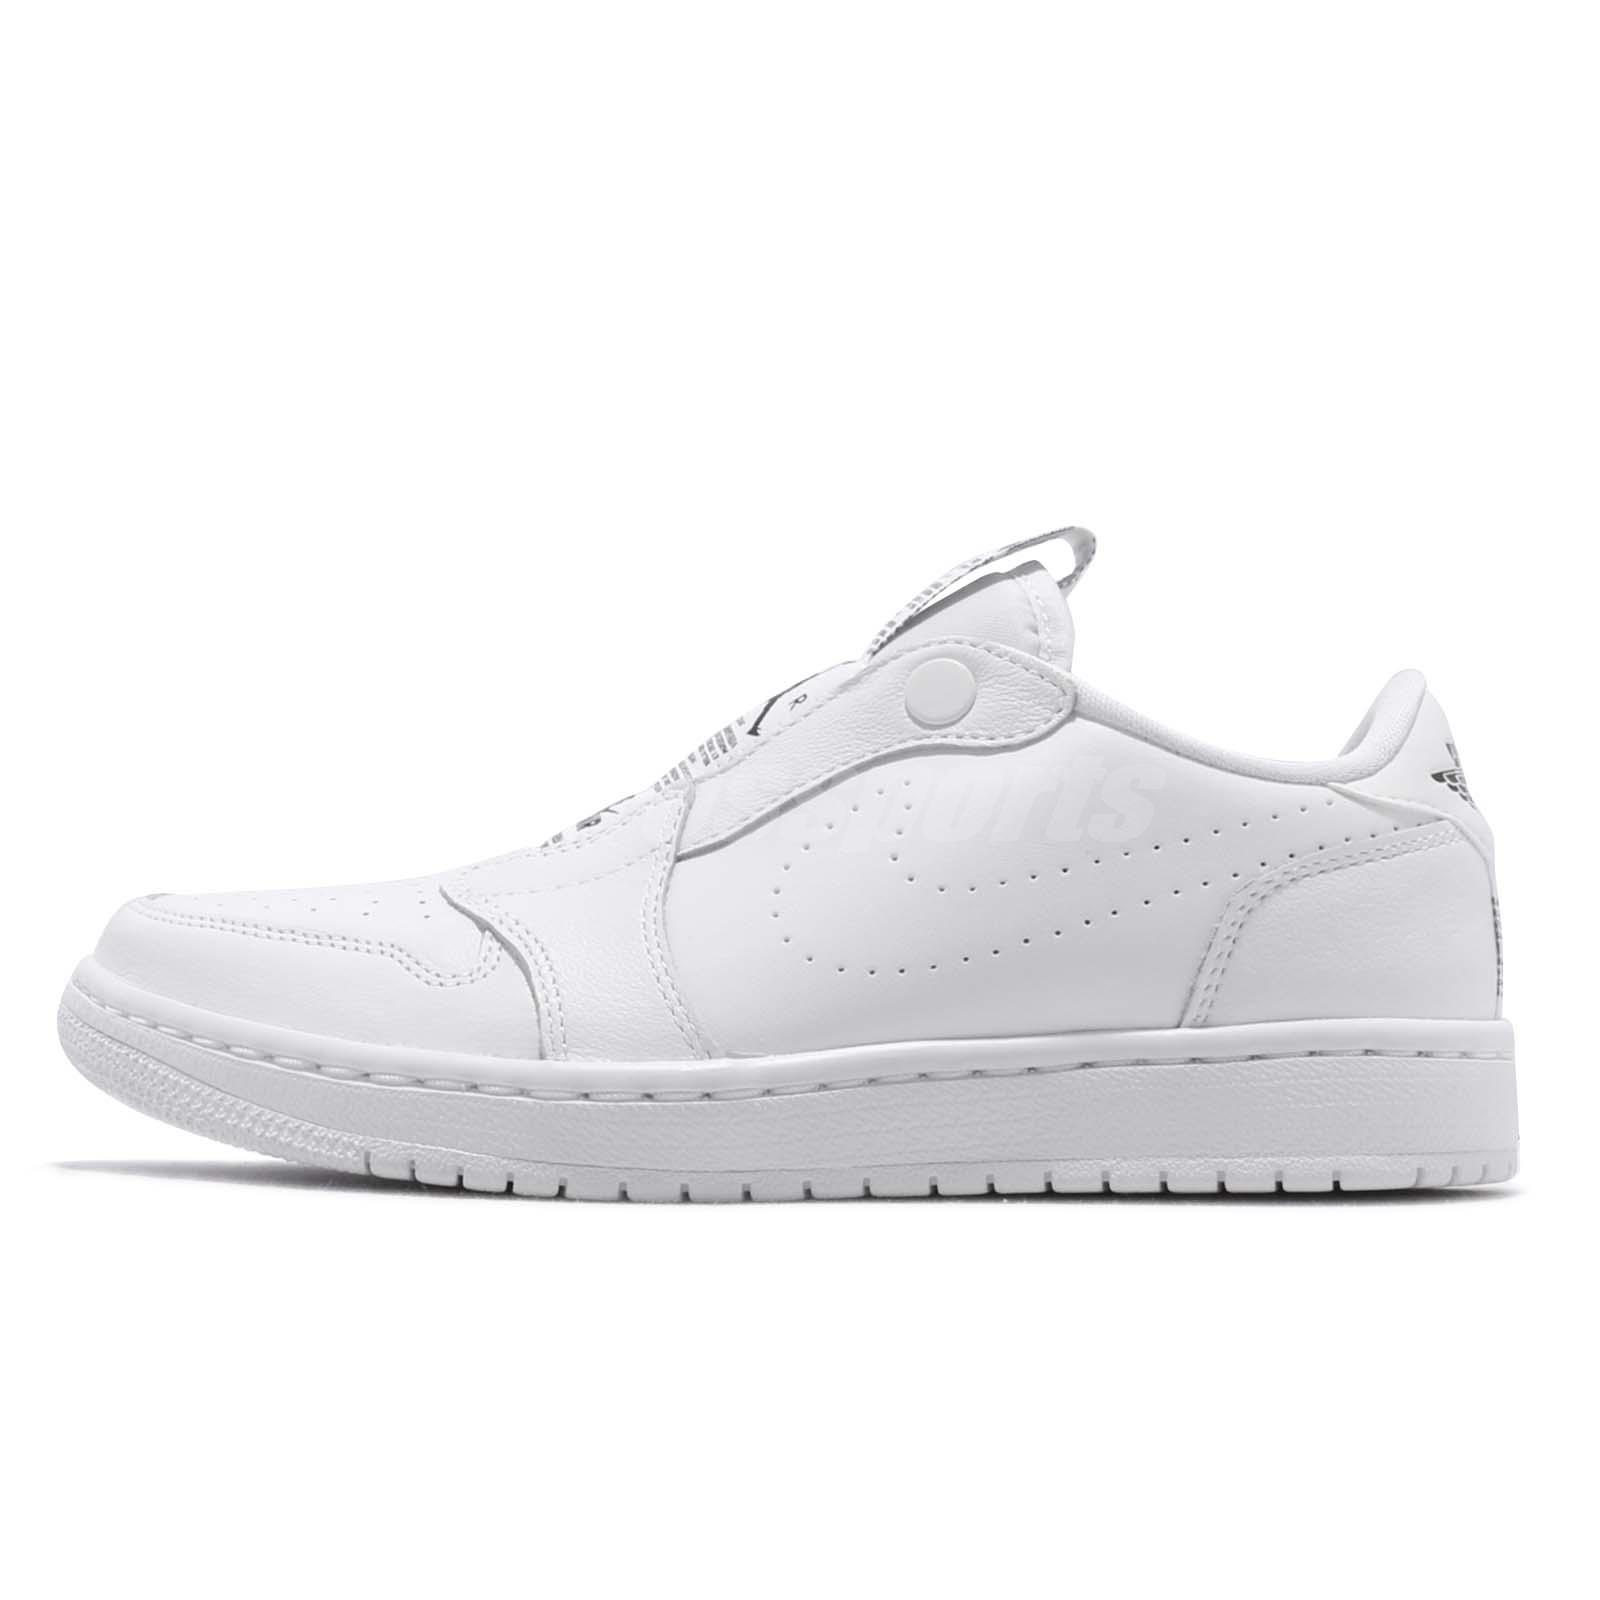 ff9c6f4d71f3 Nike Wmns Air Jordan 1 RET Low Slip On I AJ1 White Black Women Shoes AV3918- 100